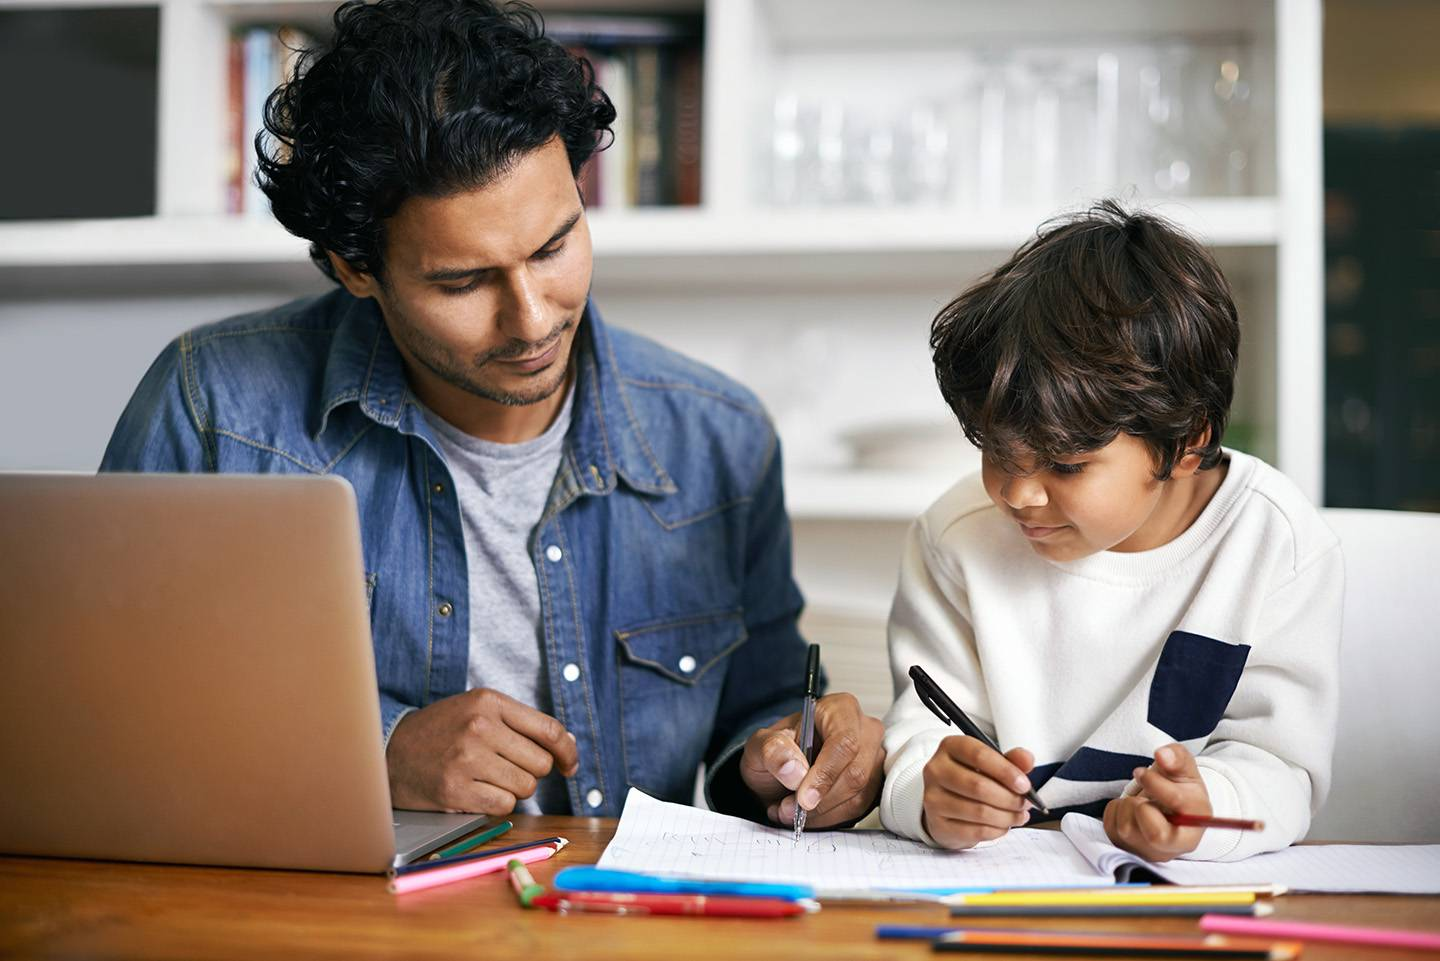 Father and son studying together